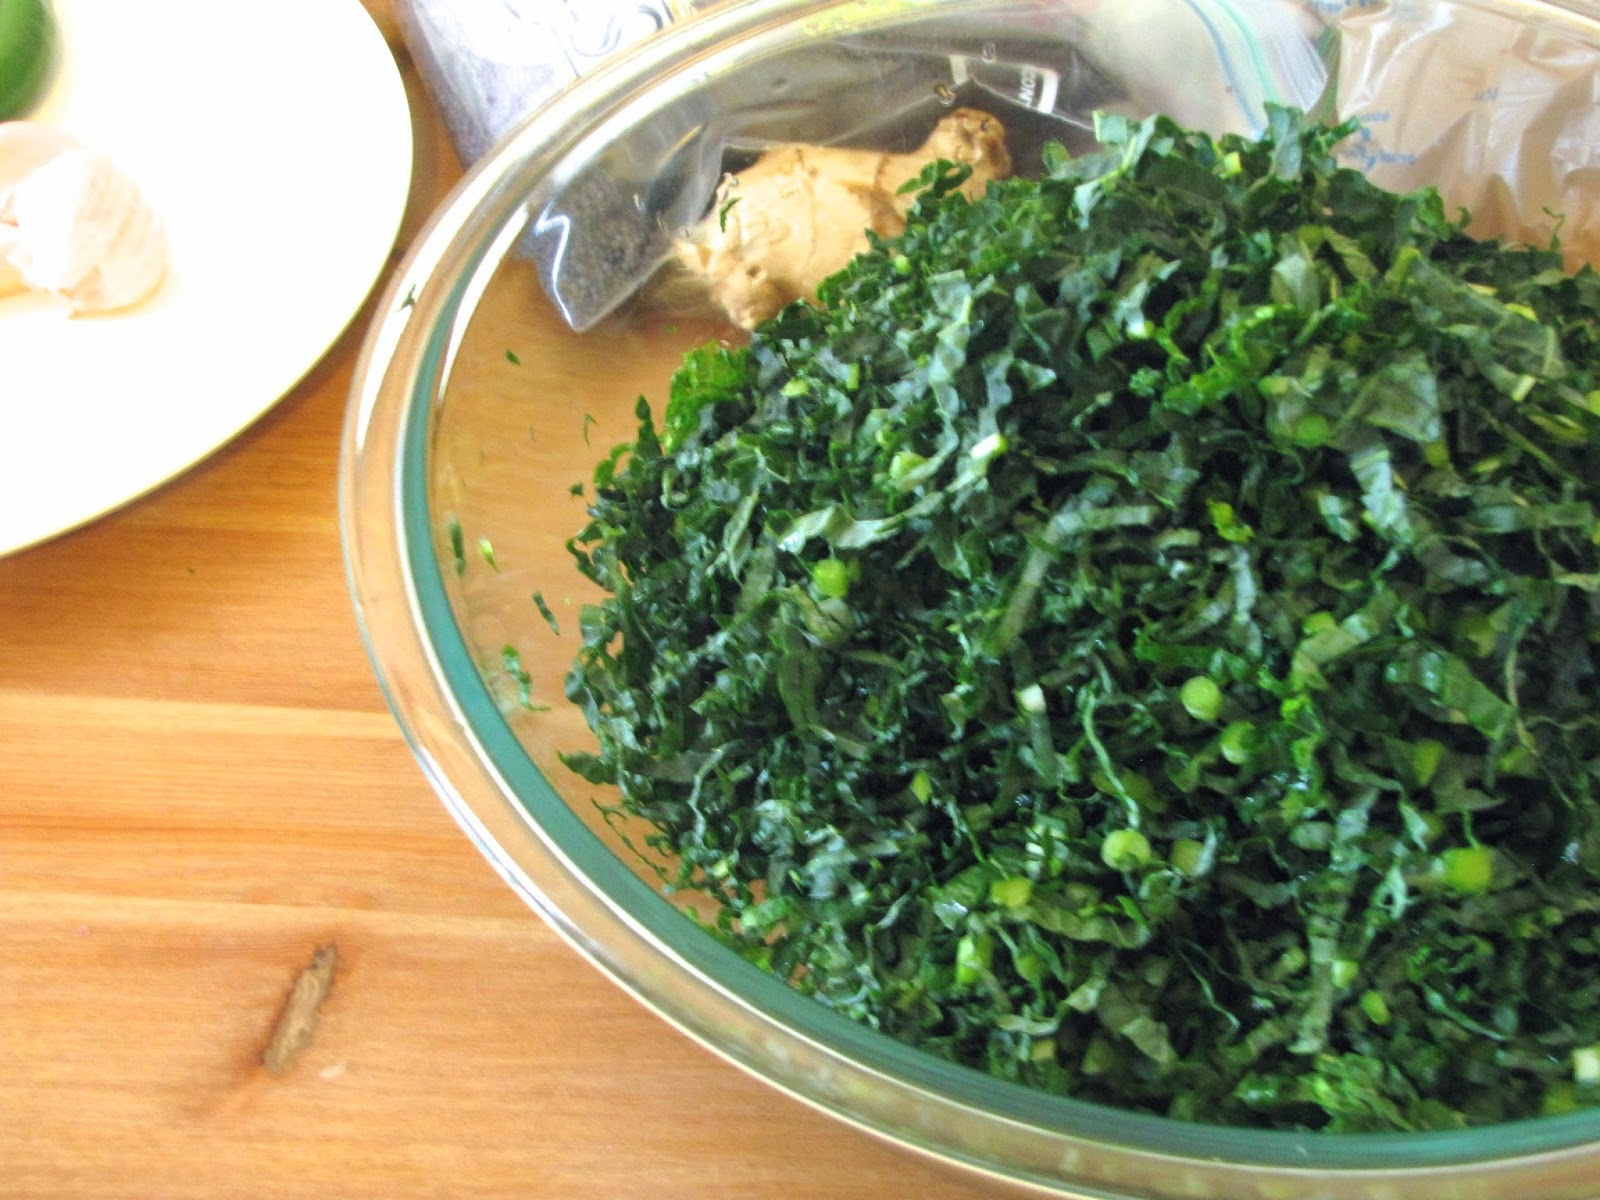 Finely shredded kale in a pyrex bowl.